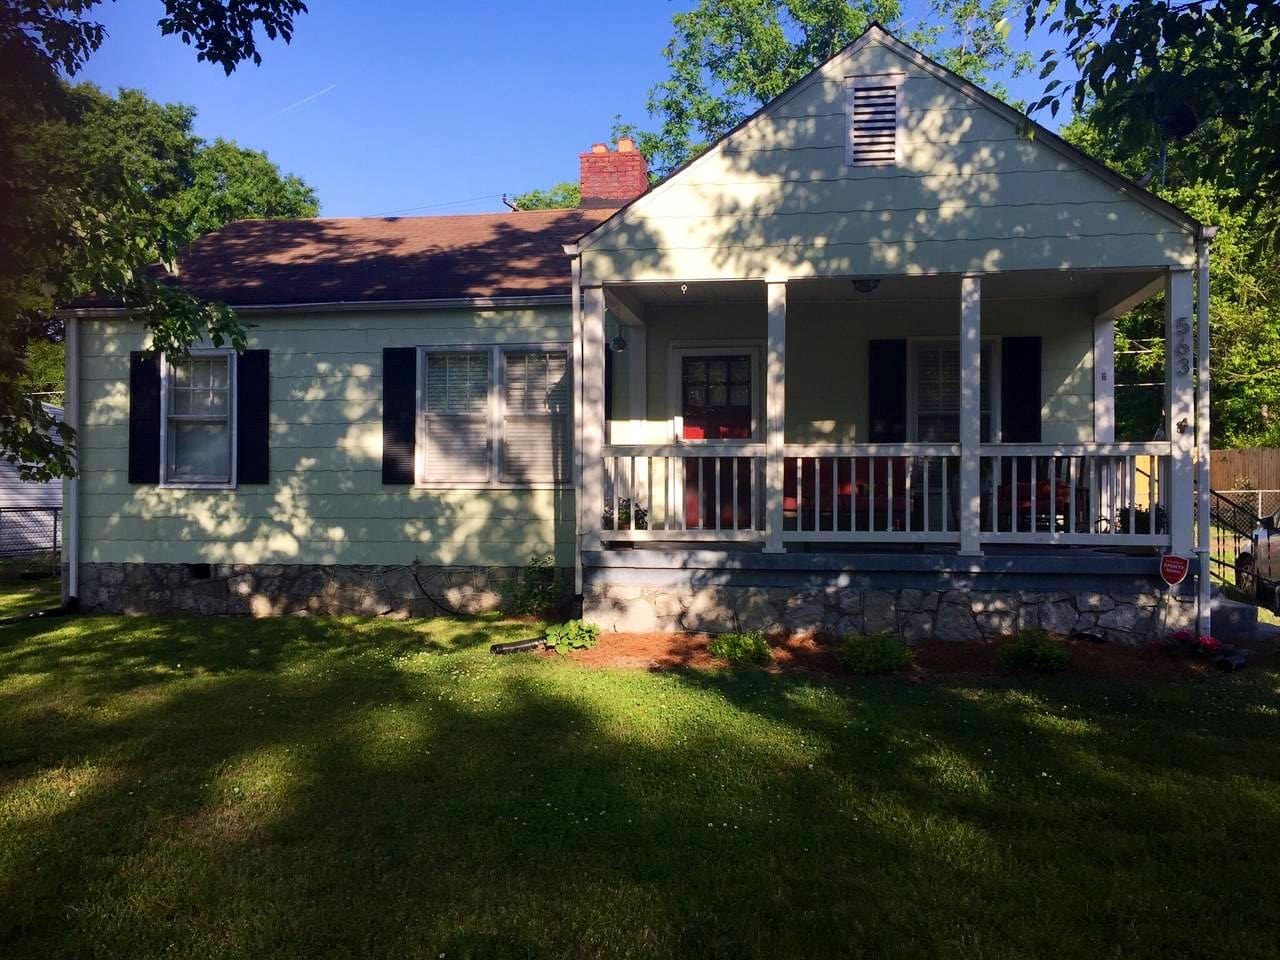 Front view of the house with front porch